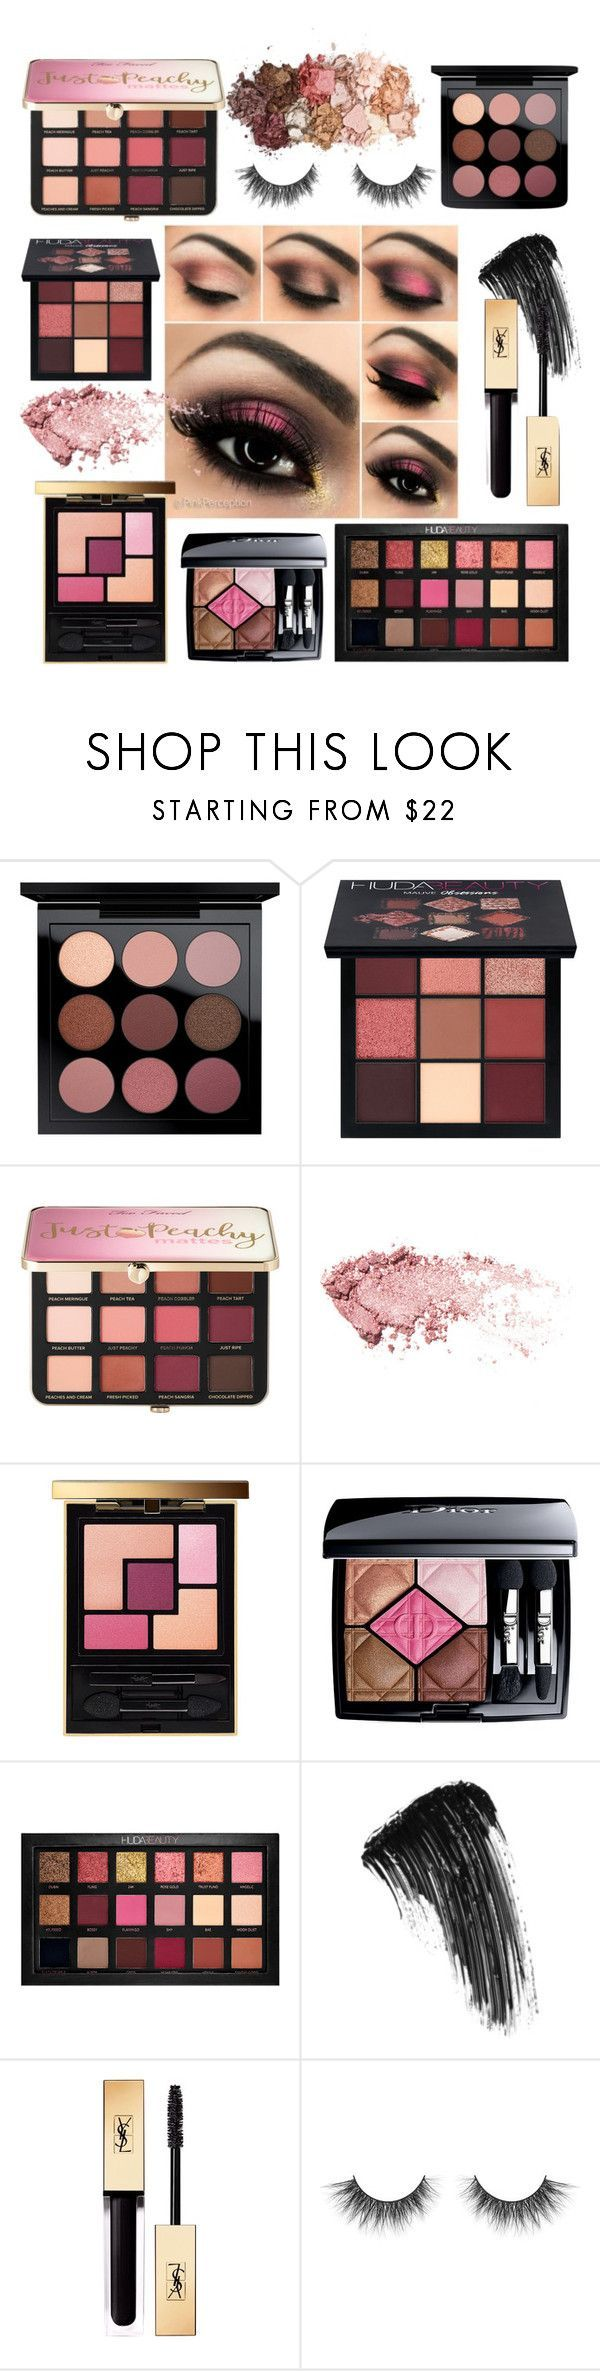 Get The Look: Pink Smokey Eye by rosegoldpearls featuring beauty from Huda Beauty, Sephora Collection, Yves Saint Laurent, Christian Dior, MAC Cosmetics, and Sigma  #Affiliate